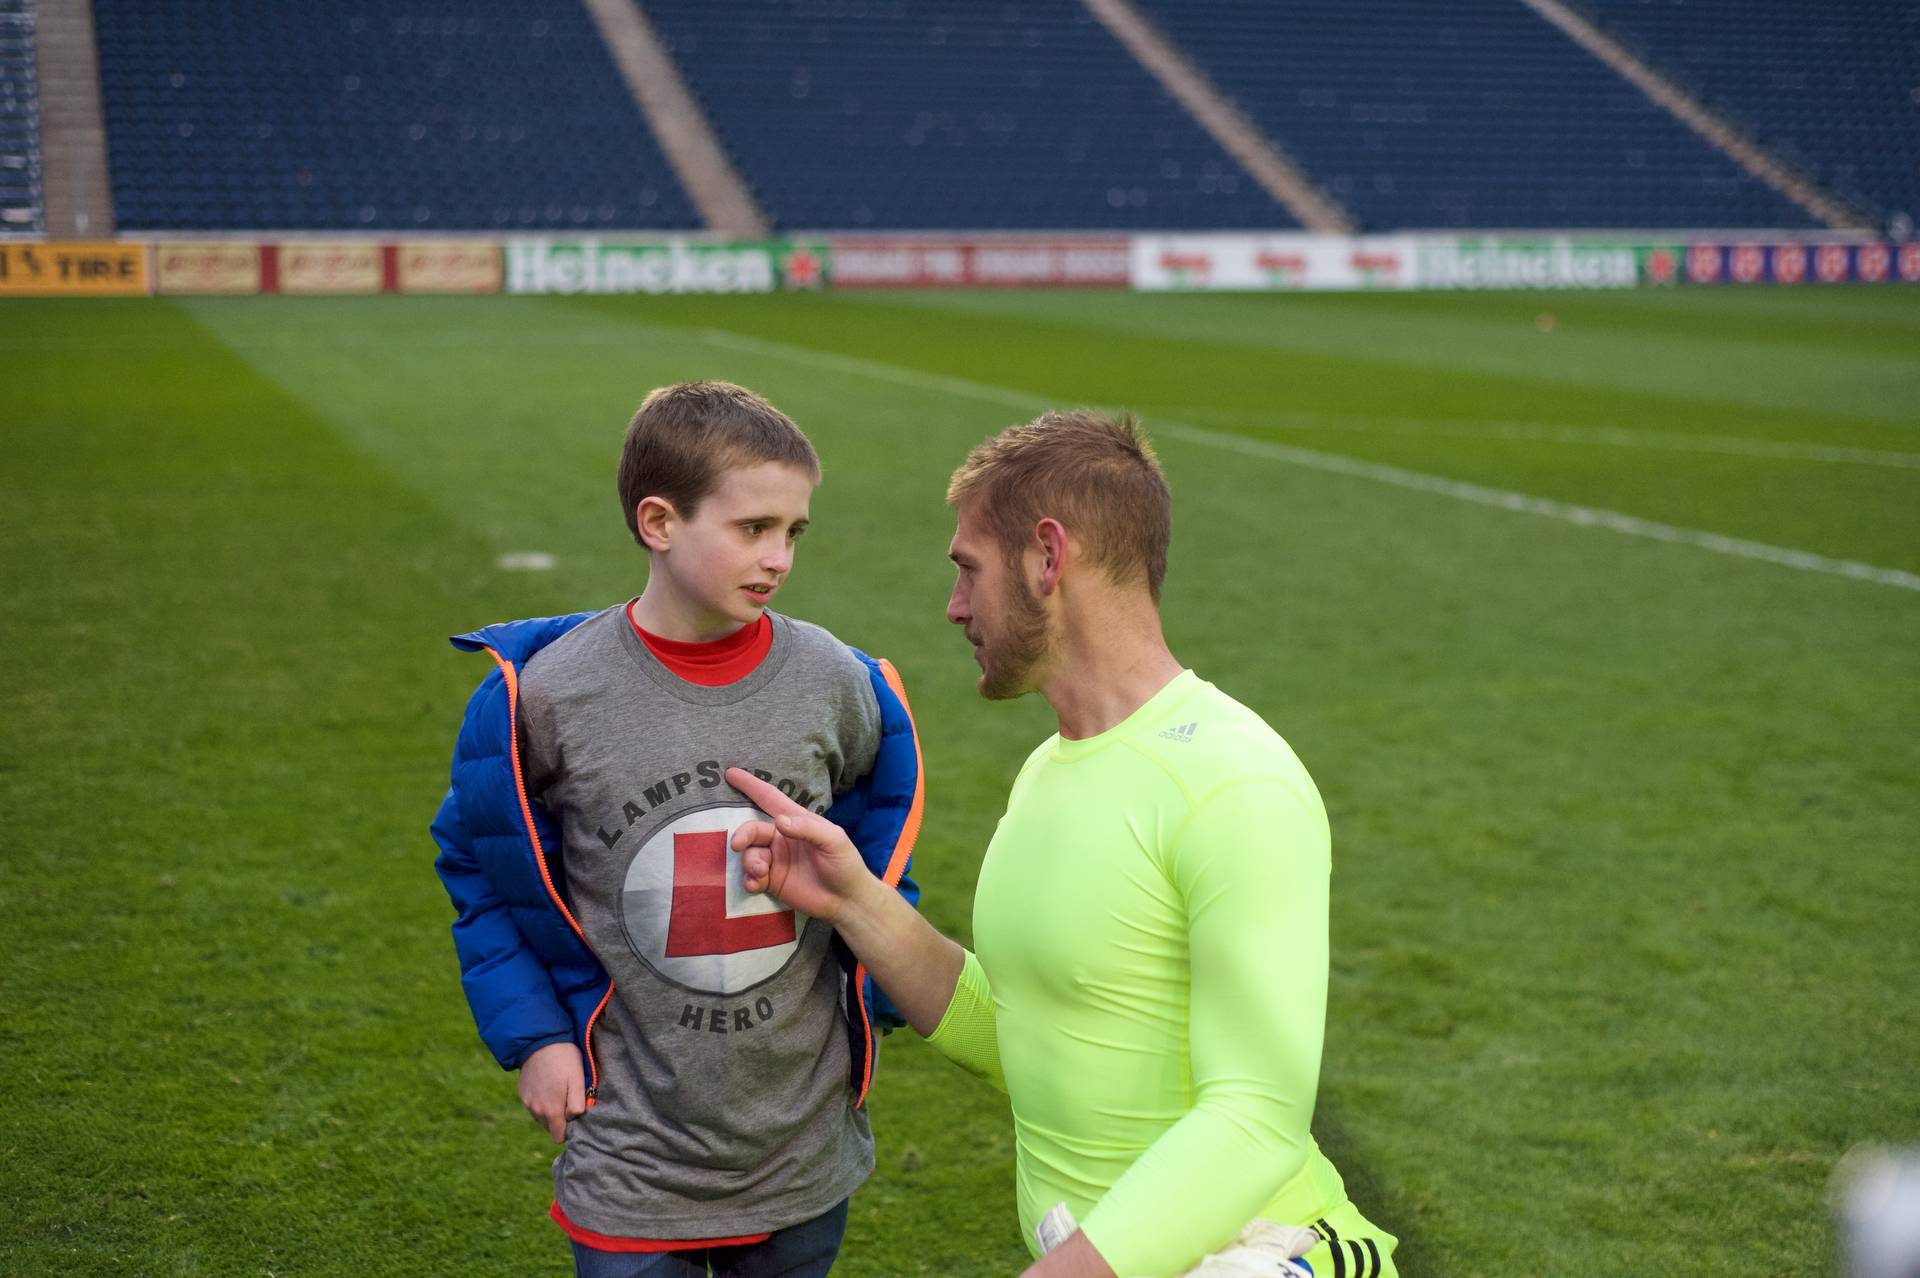 Chicago Fire goalkeeper Matt Lampson meets with a young cancer patient, Ryan, who was Lampson's guest at a recent soccer game.